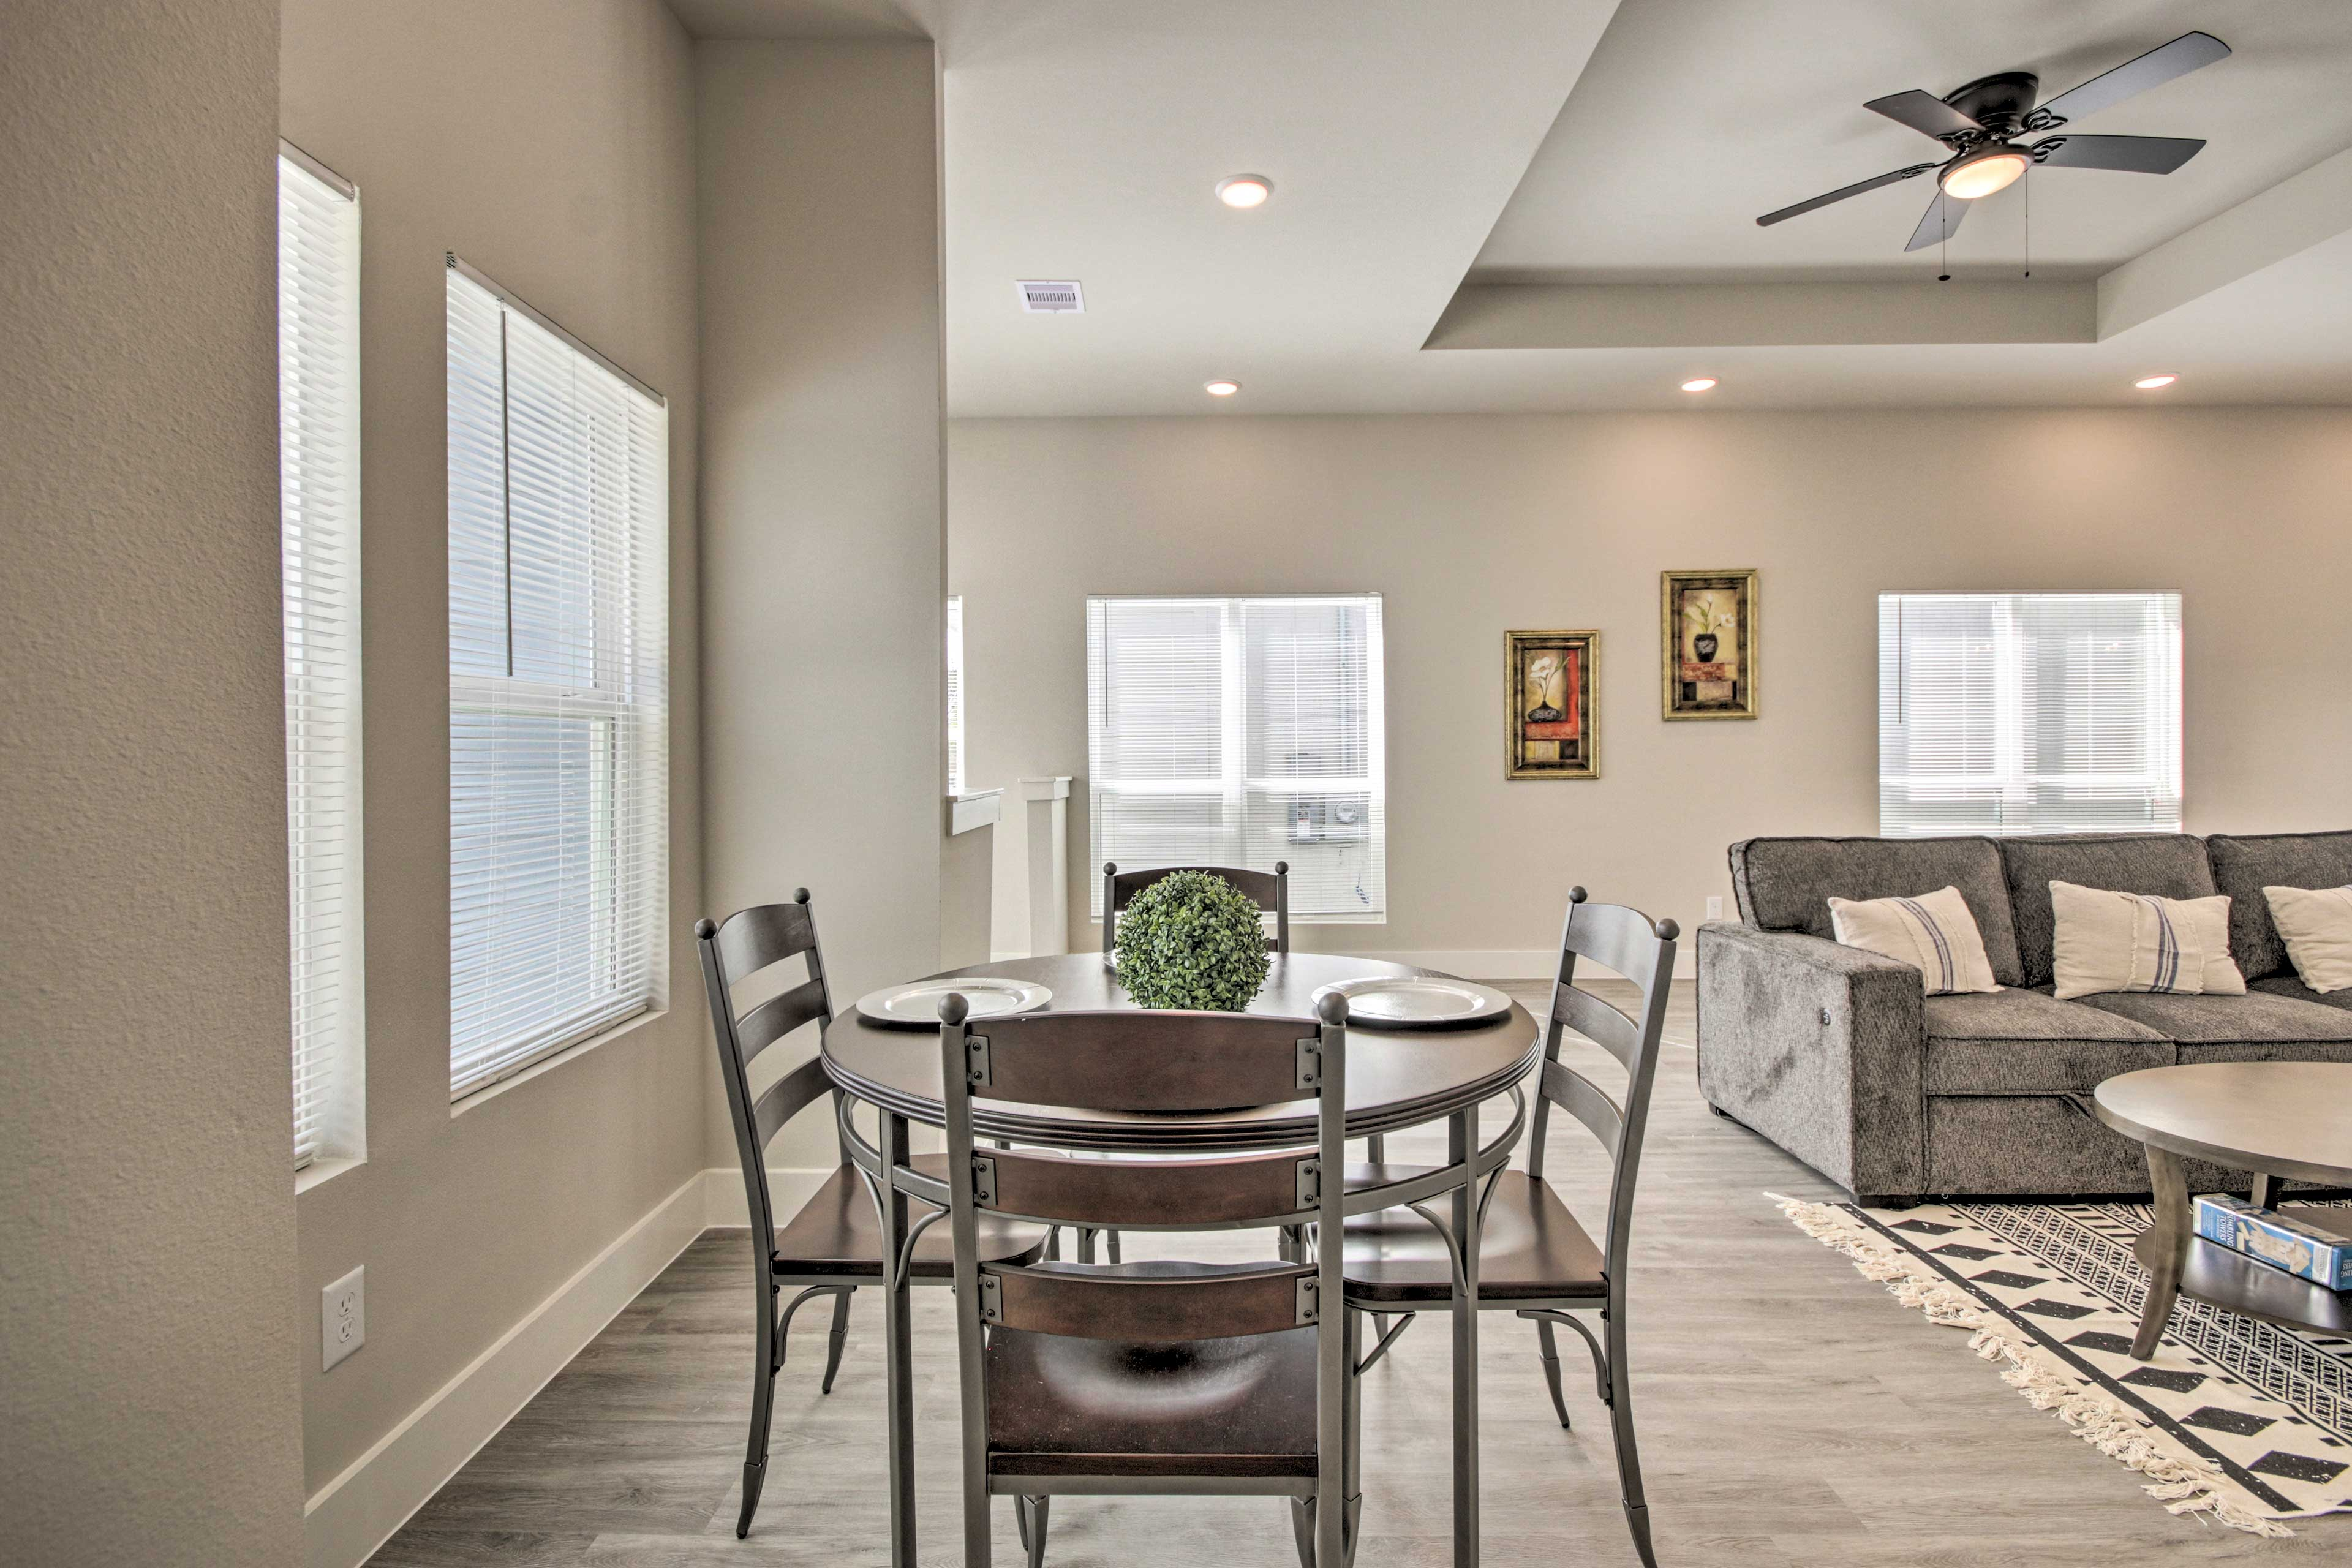 Living Room | 4-Person Dining Table